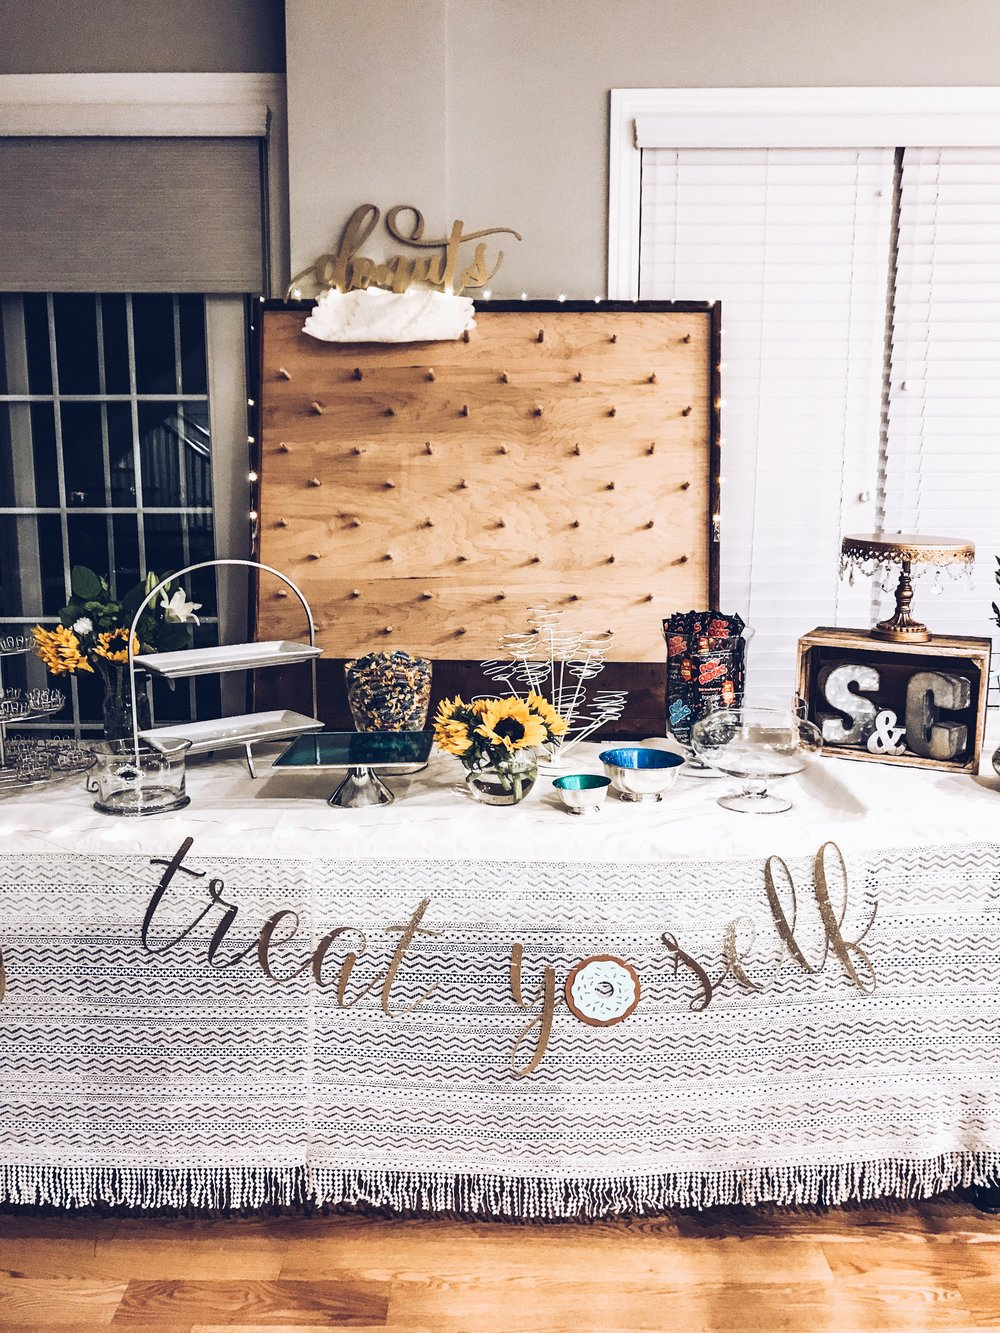 7 Steps To Creating The Best Dessert Bar For Your Party. DIY Donut Wall.